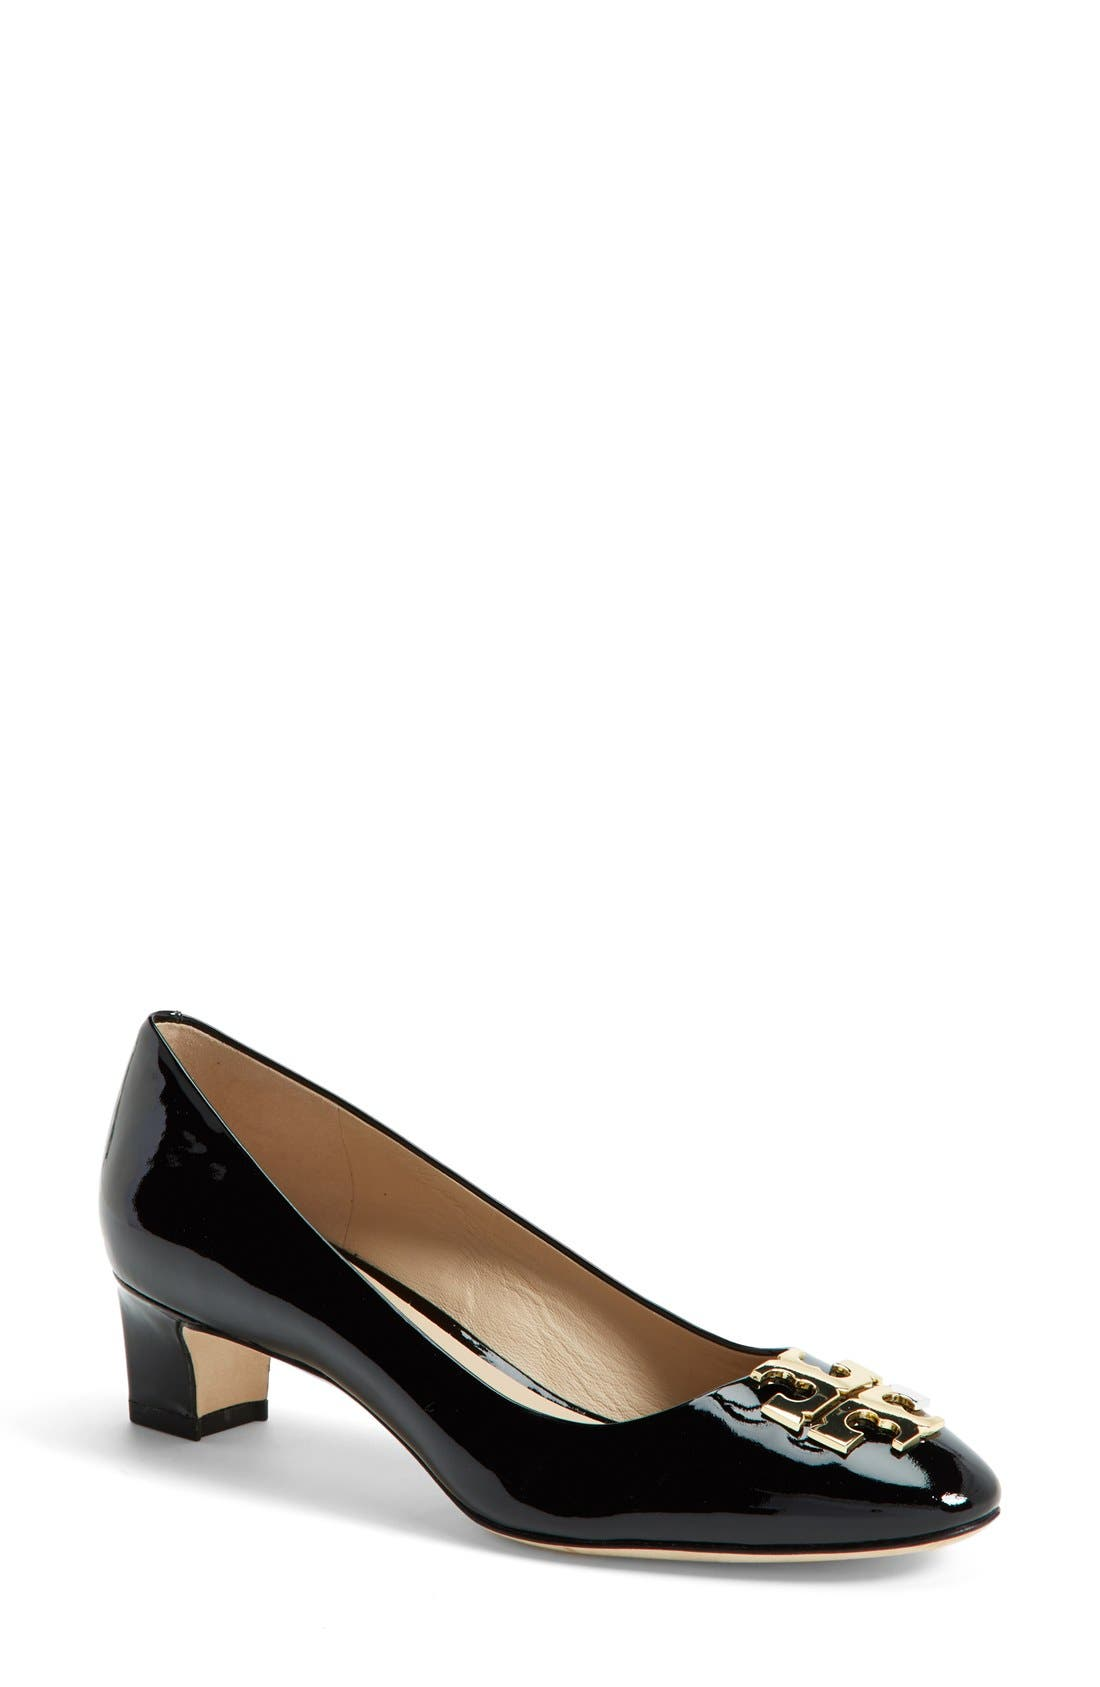 Alternate Image 1 Selected - Tory Burch 'Raleigh' Patent Leather Pump (Women)